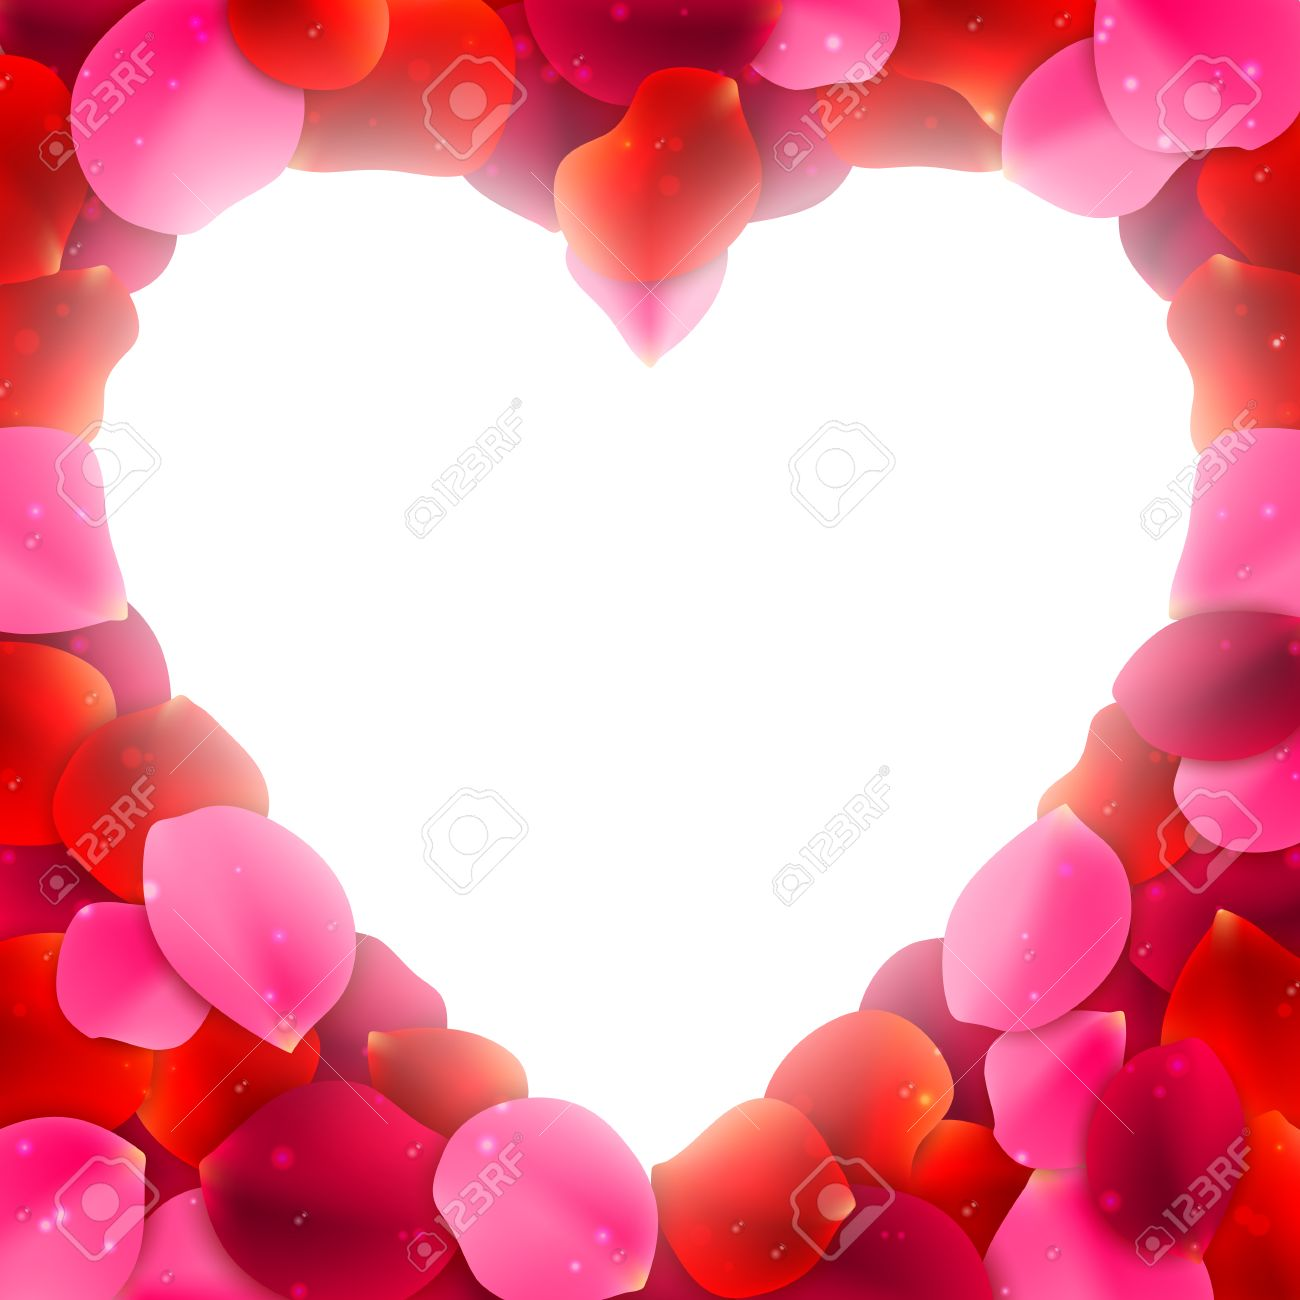 Heart Shaped Frame Or Border Made Of Red And Pink Rose Flower ...